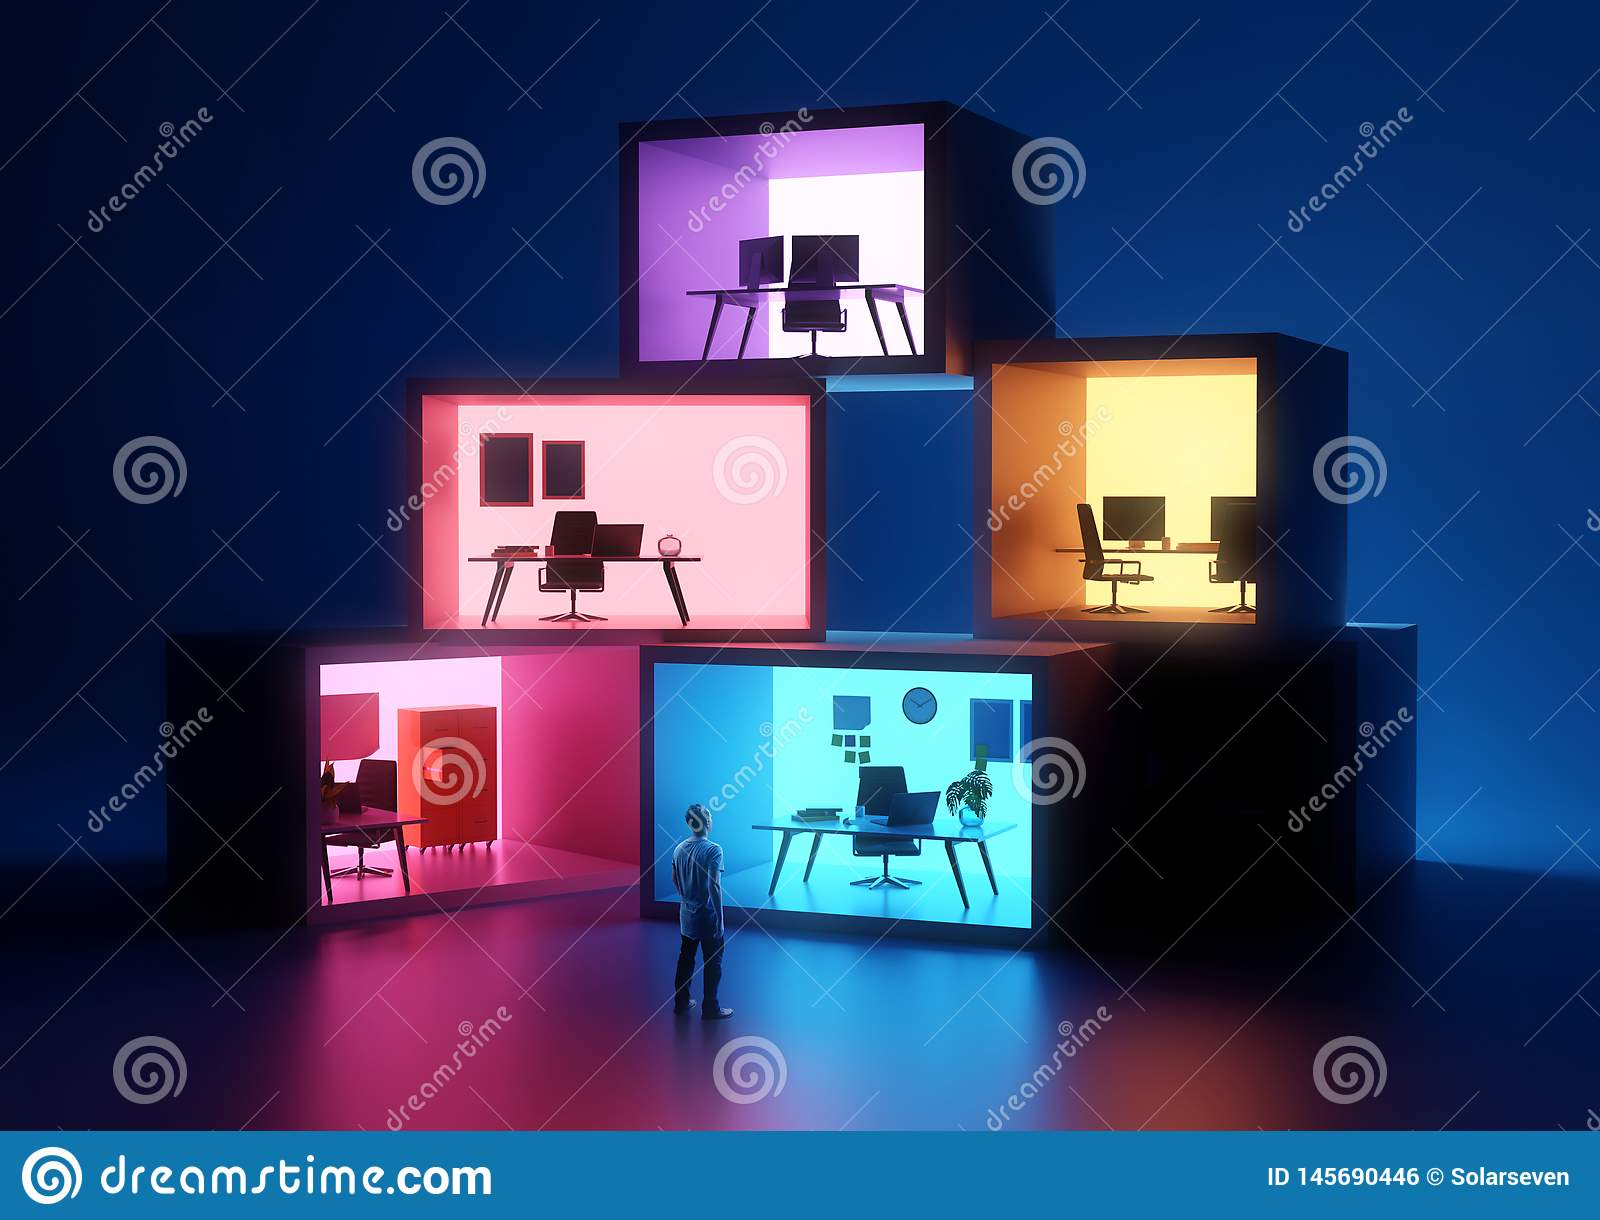 Business Office and Workplace Spaces